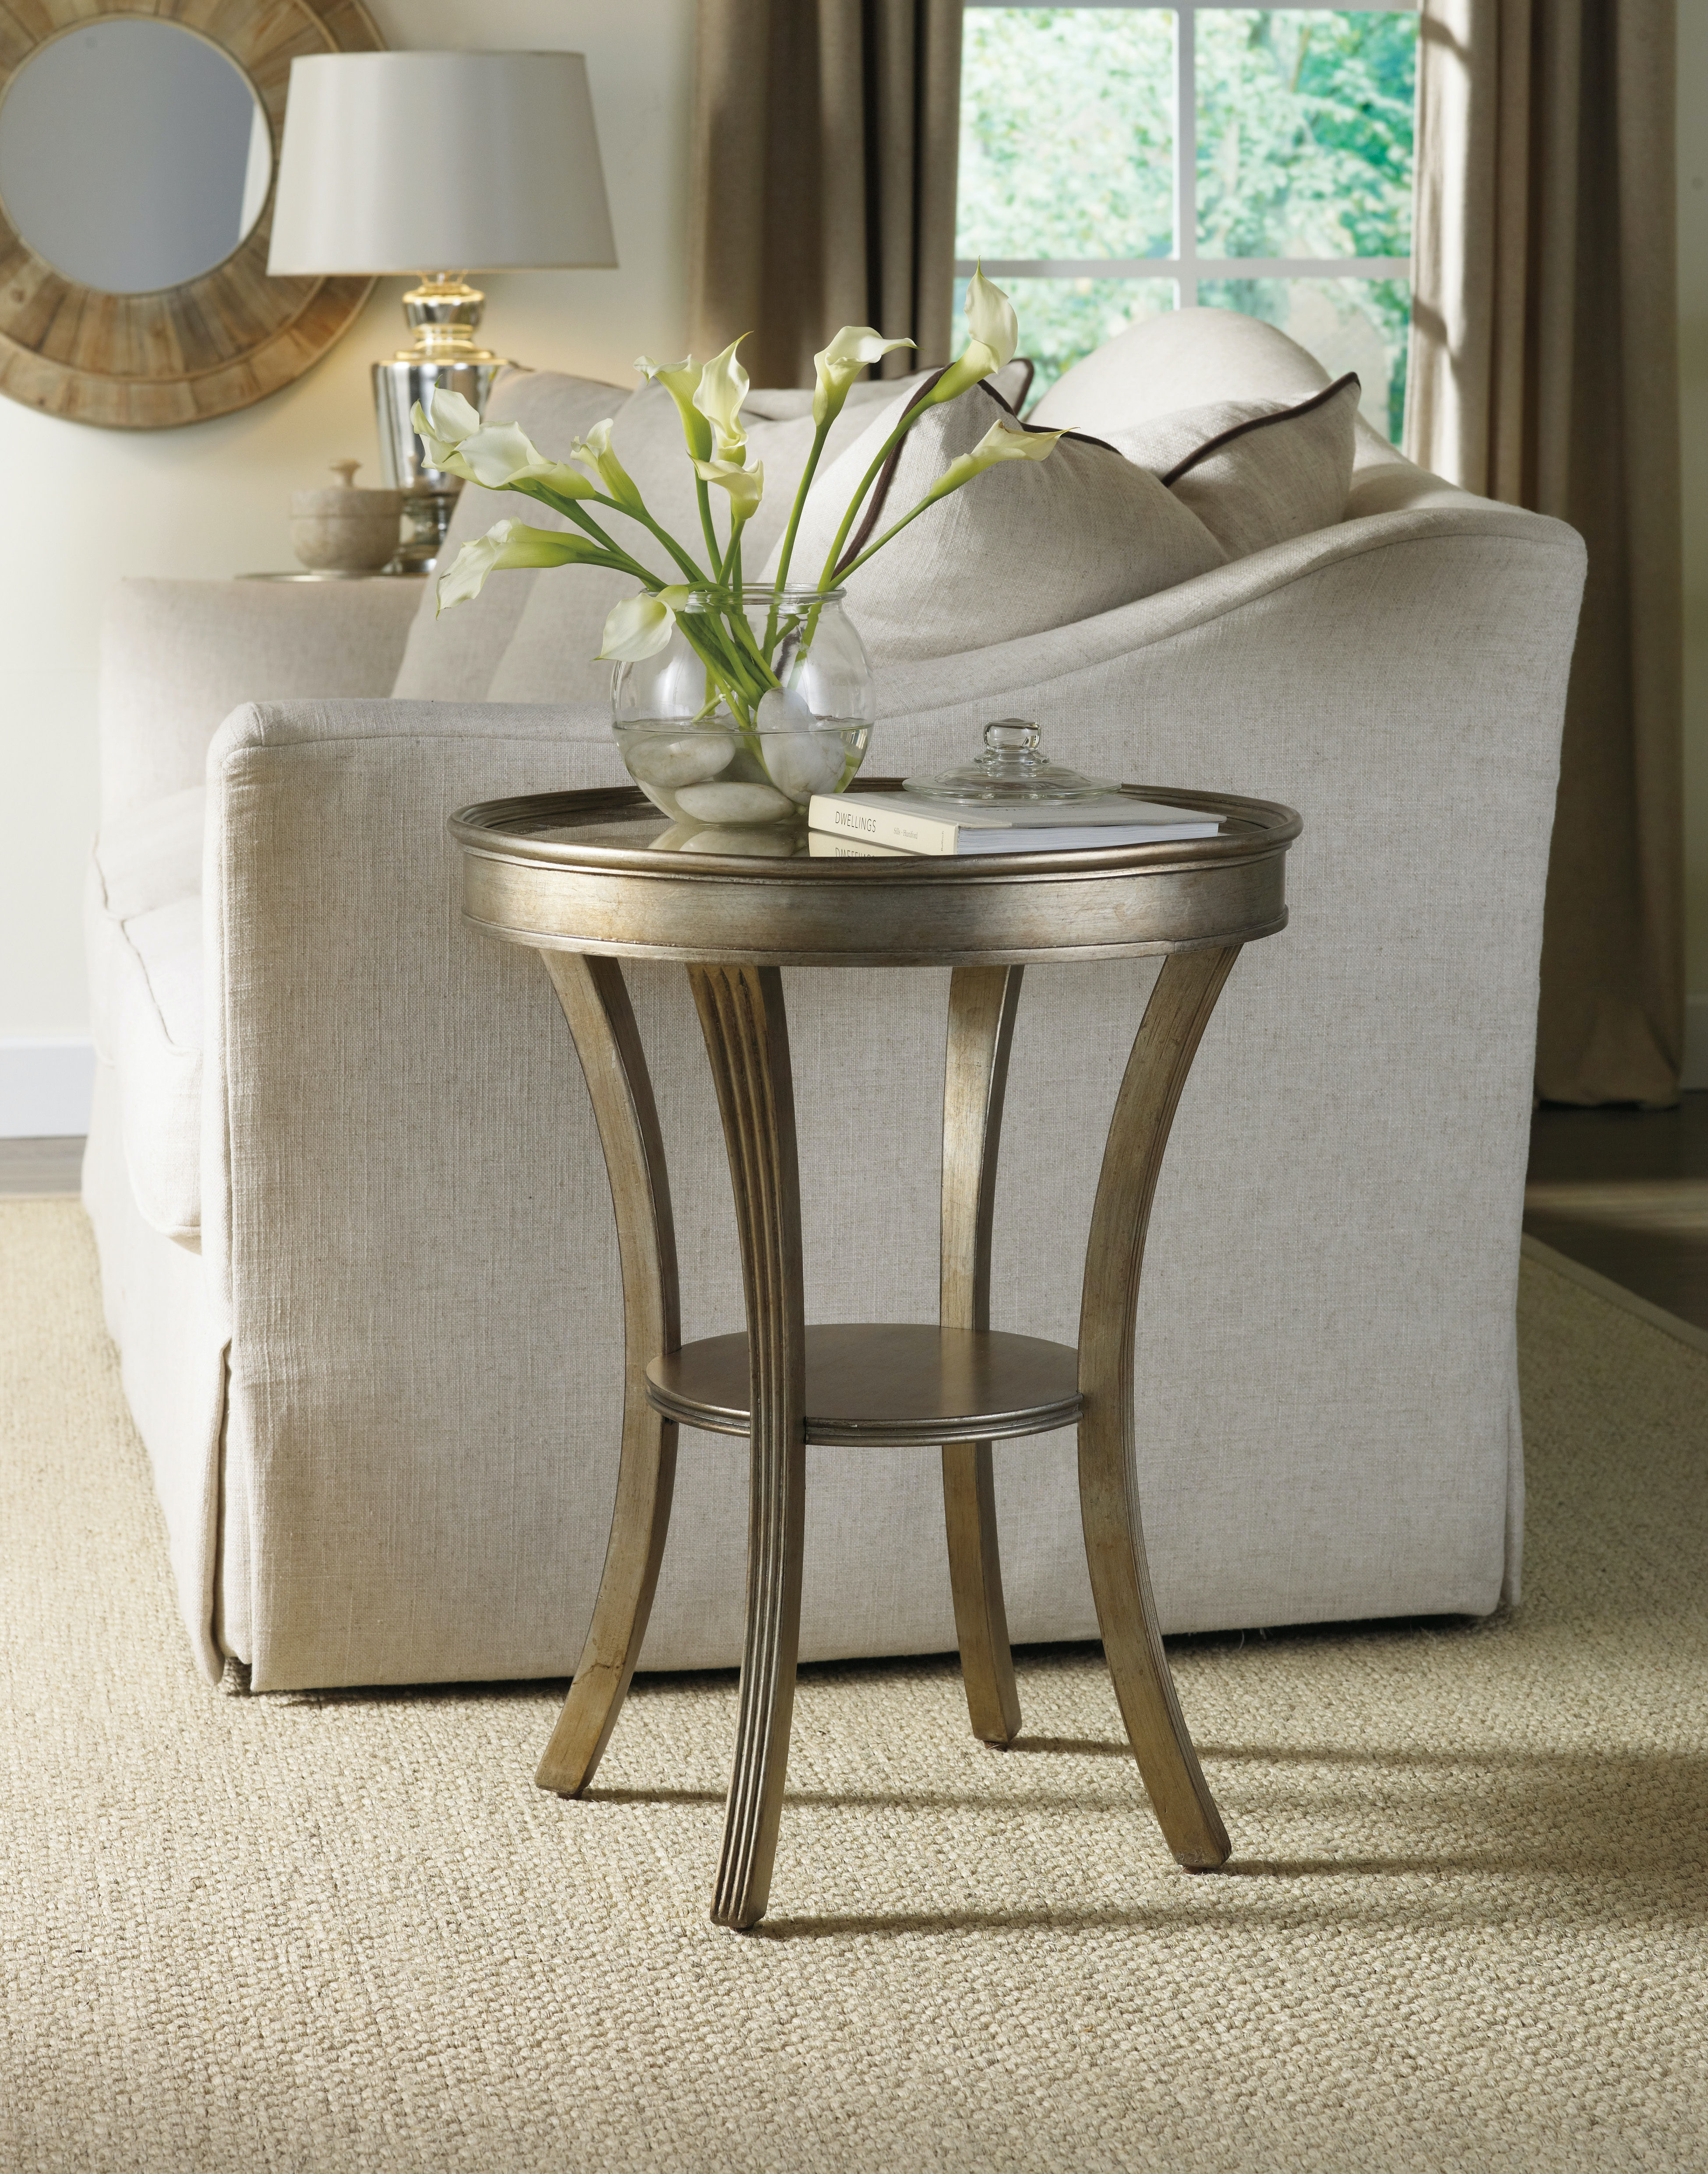 High Quality Hooker Furniture Sanctuary Round Mirrored Accent Table   Visage 3014 50001